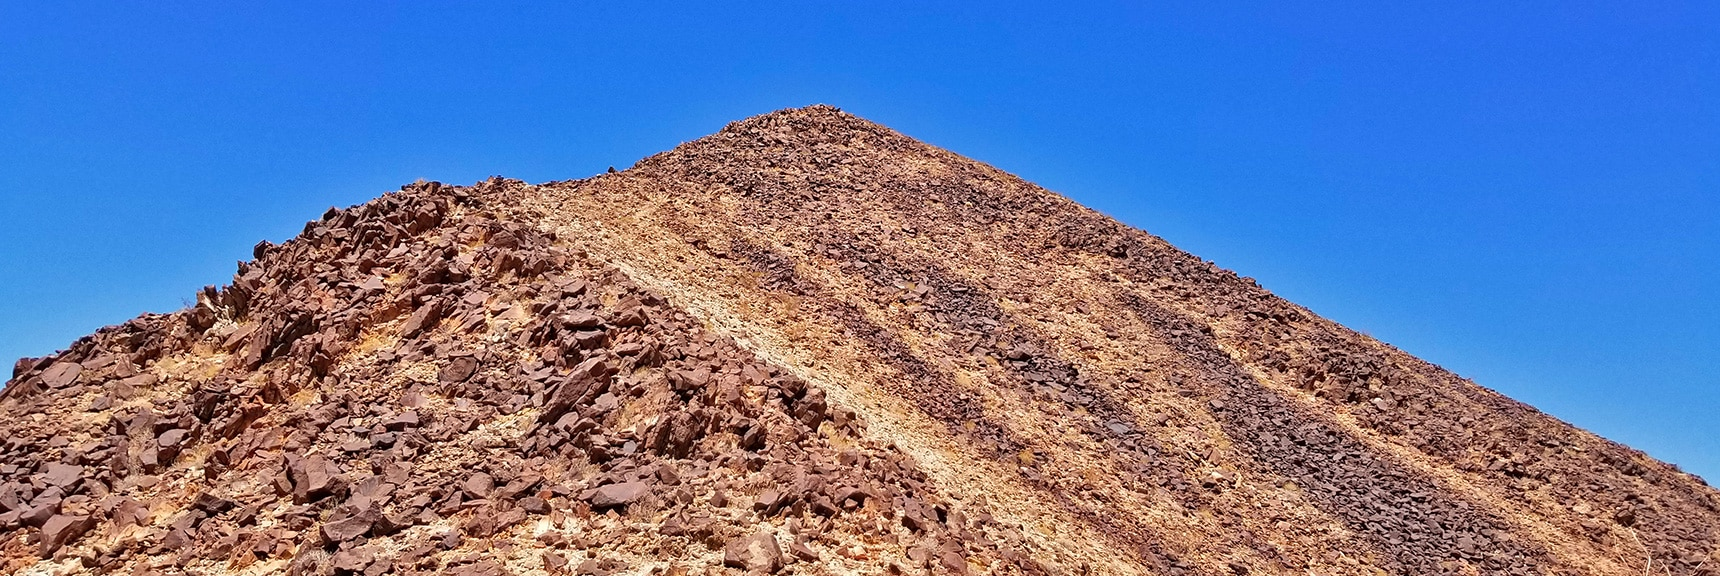 View Back up the South Ridge from Midway Down | Lava Butte | Lake Mead National Recreation Area, Nevada